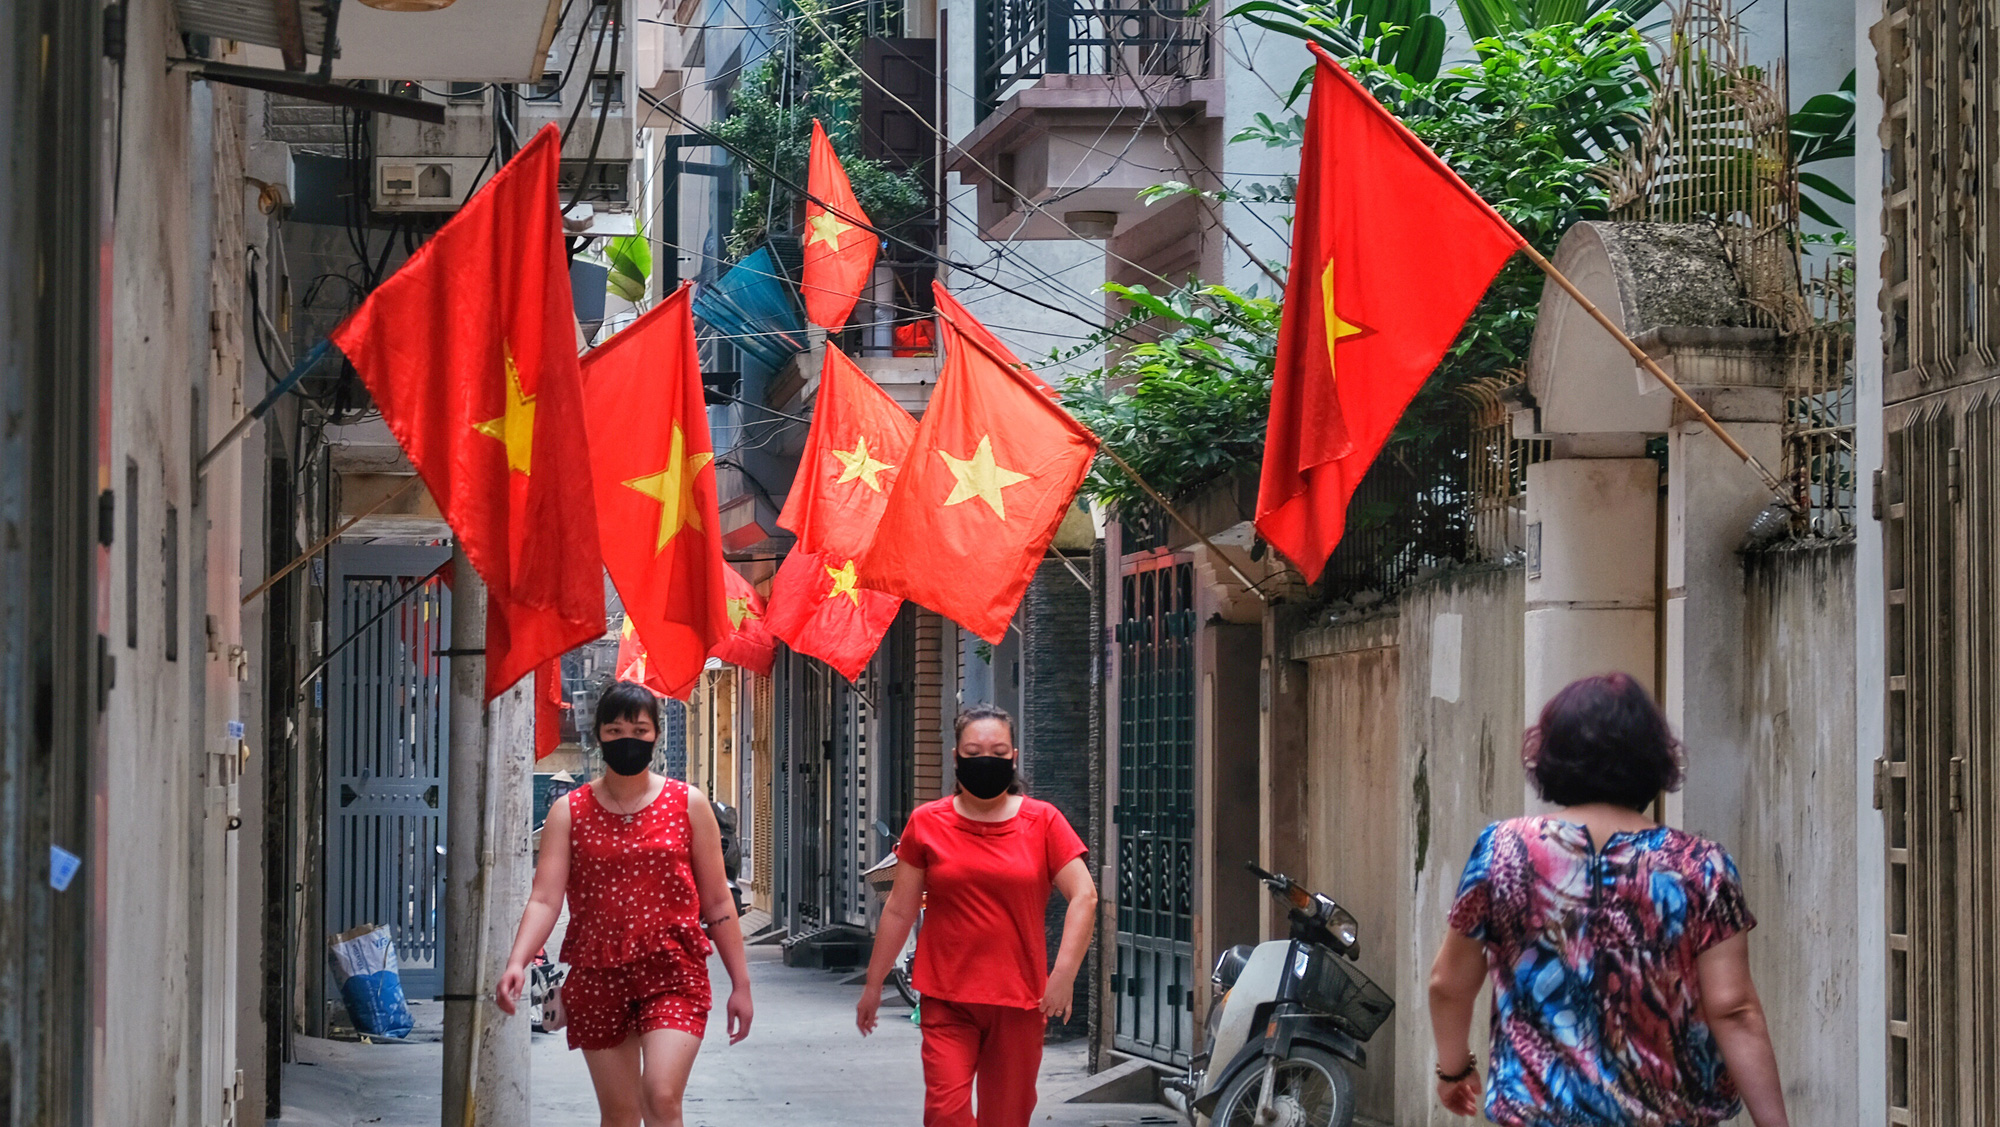 Hanoi, Ho Chi Minh City brighten up on 45th anniversary of Reunification Day